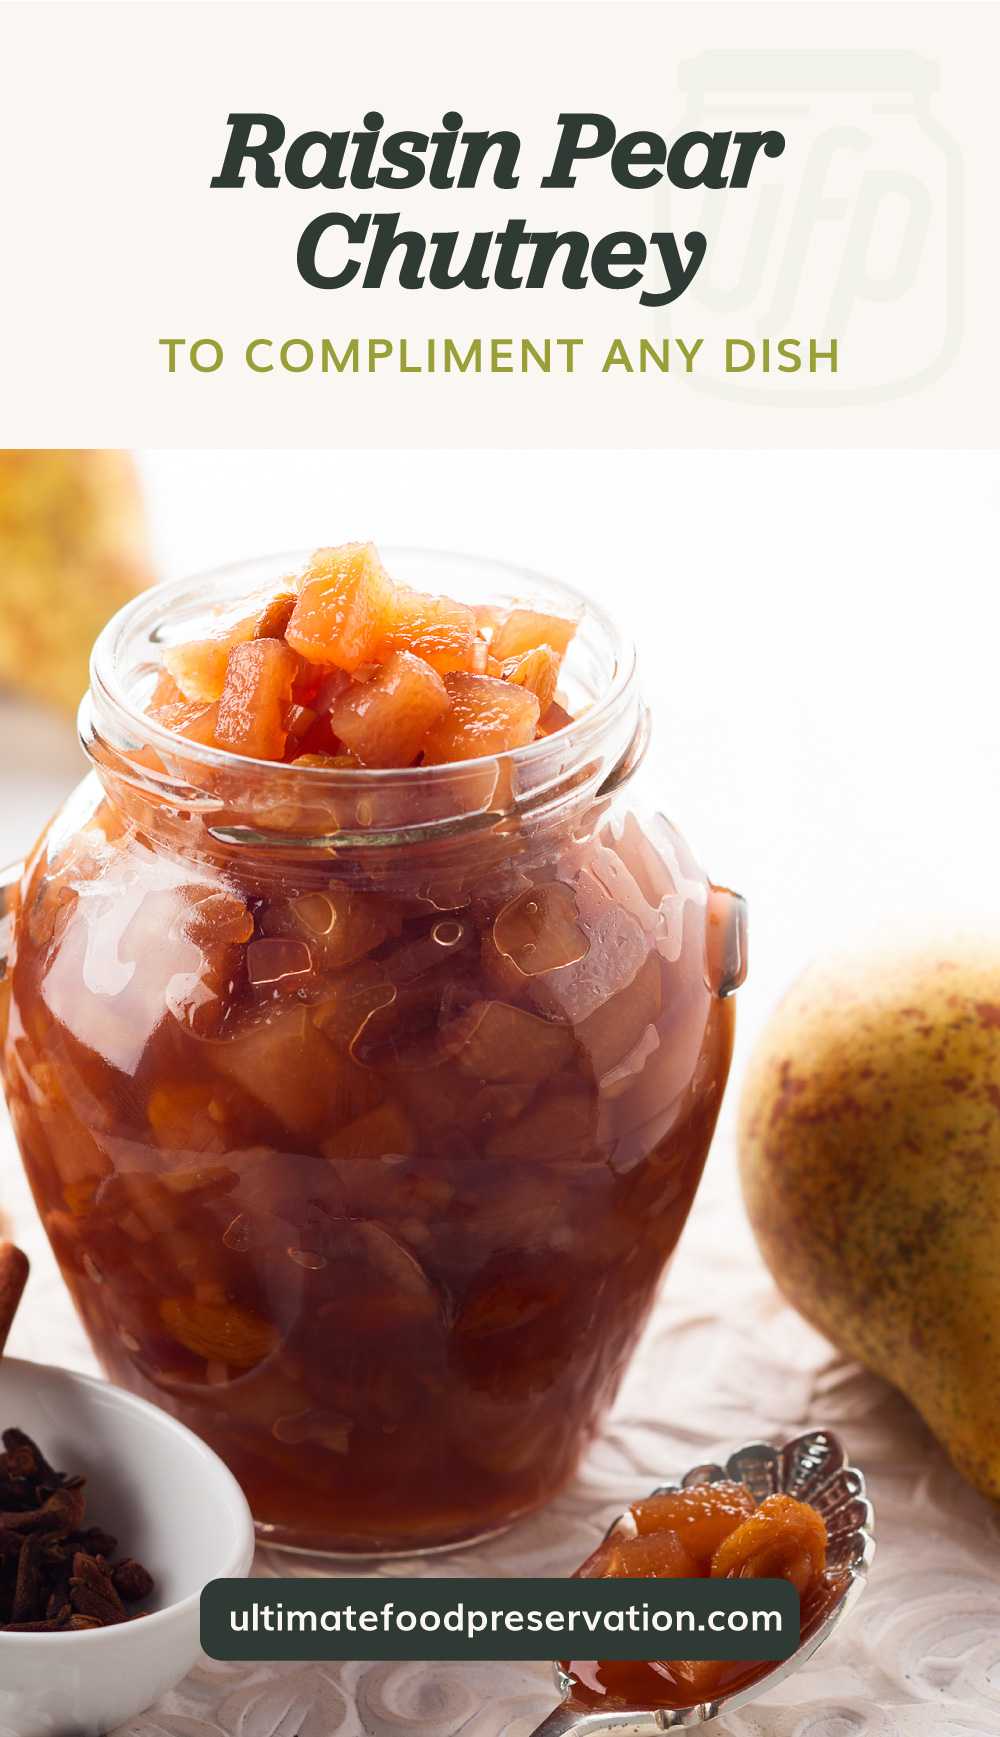 """Text area which says """"Raisin Pear Chutney To Compliment Any Dish"""" next to a jar of raisin pear chutney surrounded by pears followed by another text area which says ultimatefoodpreservation.com"""